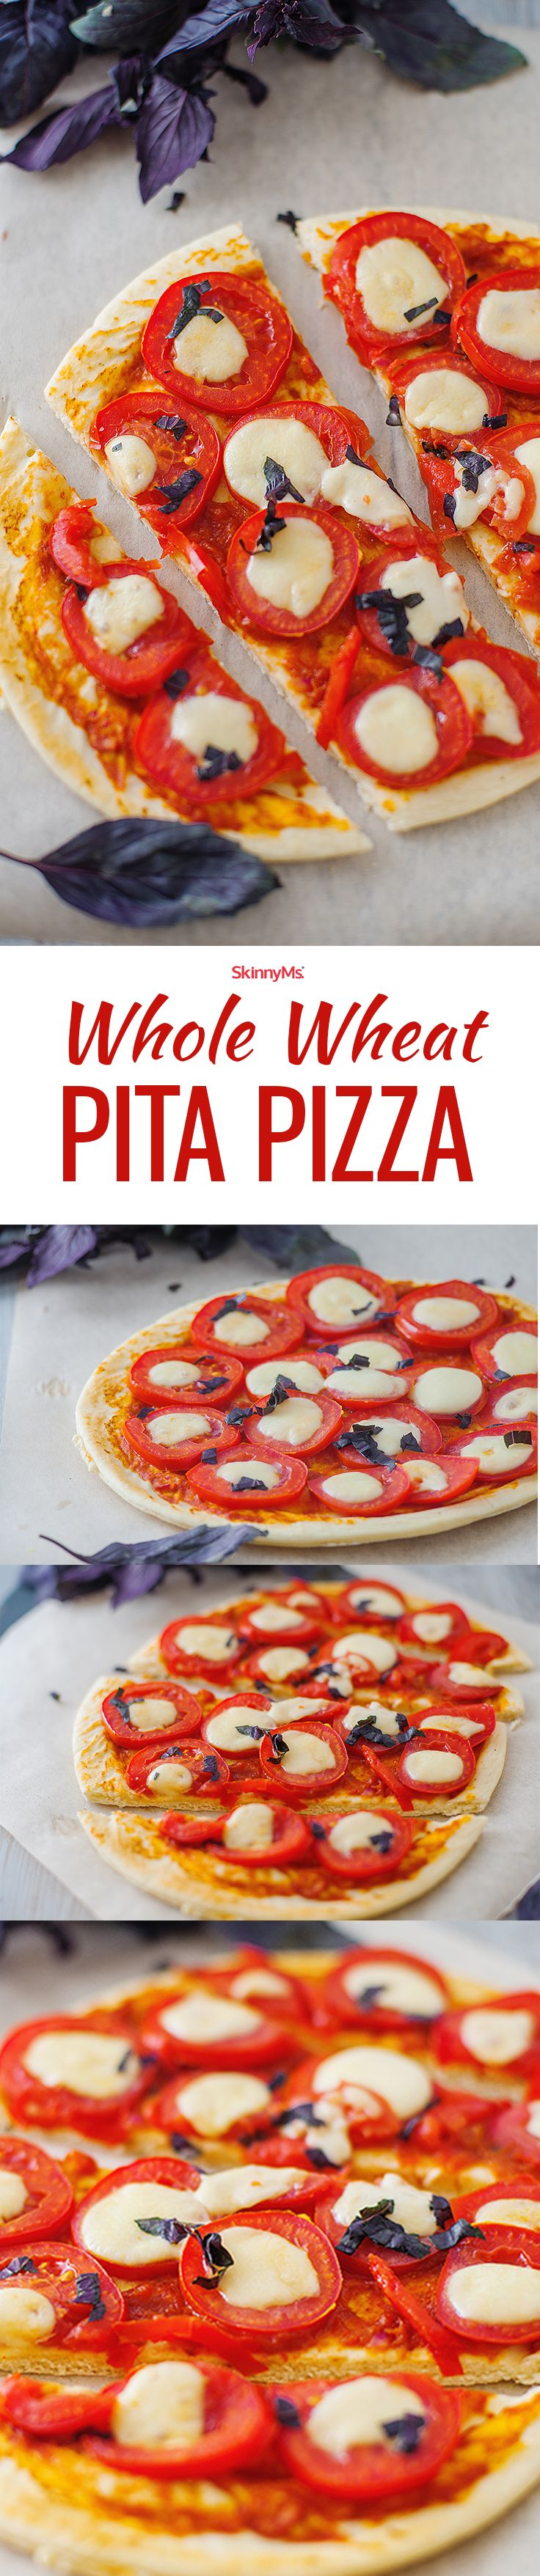 This Whole Wheat Pita Pizza is a quick and easy meal that's perfect for a busy weeknight!